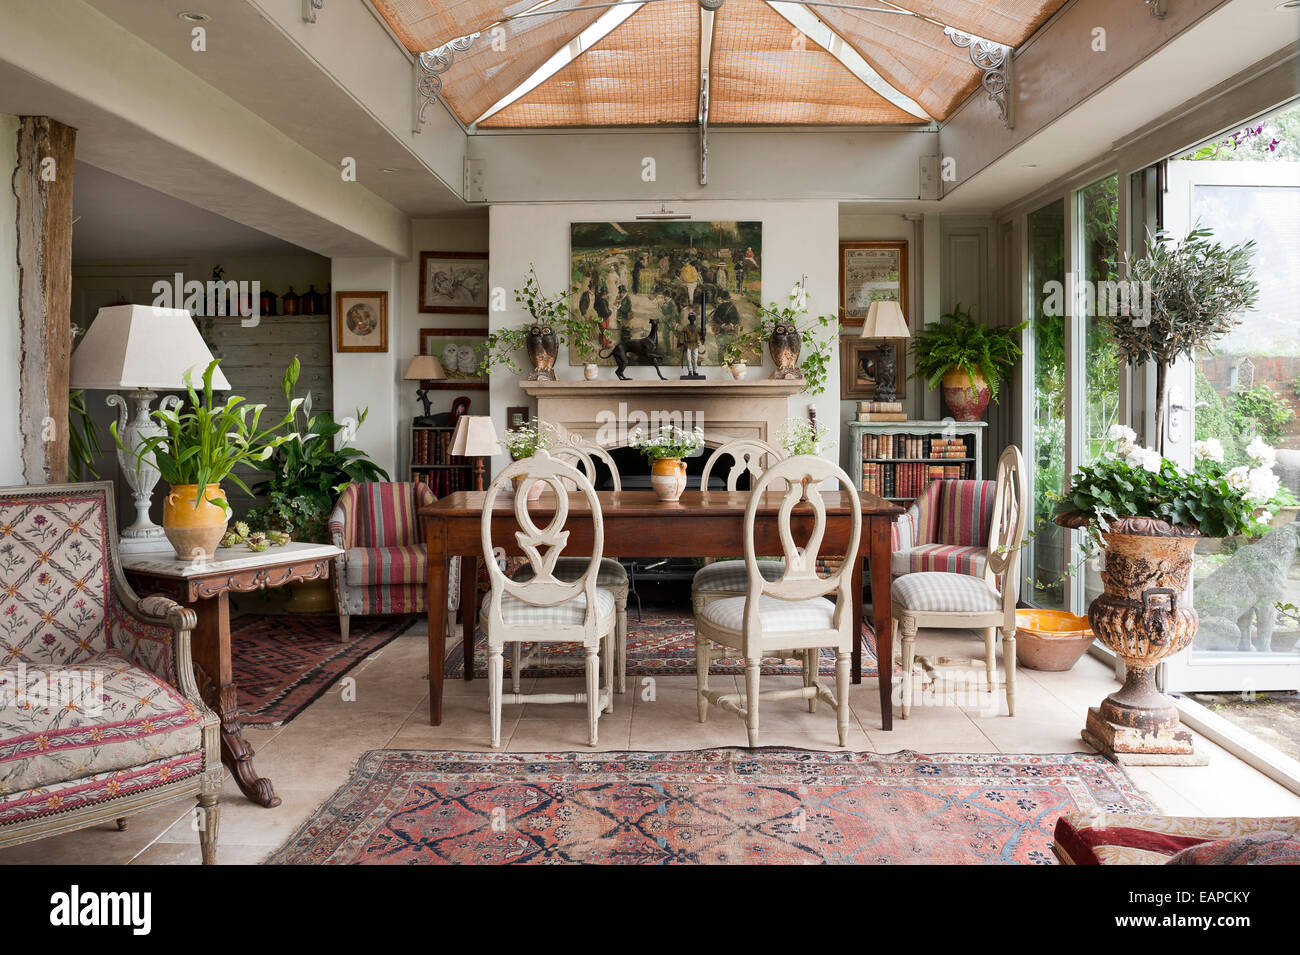 Roundback wooden dining chairs around antique farmhouse table in dining  room with antique persian carpets and tapestry armchair - Roundback Wooden Dining Chairs Around Antique Farmhouse Table In